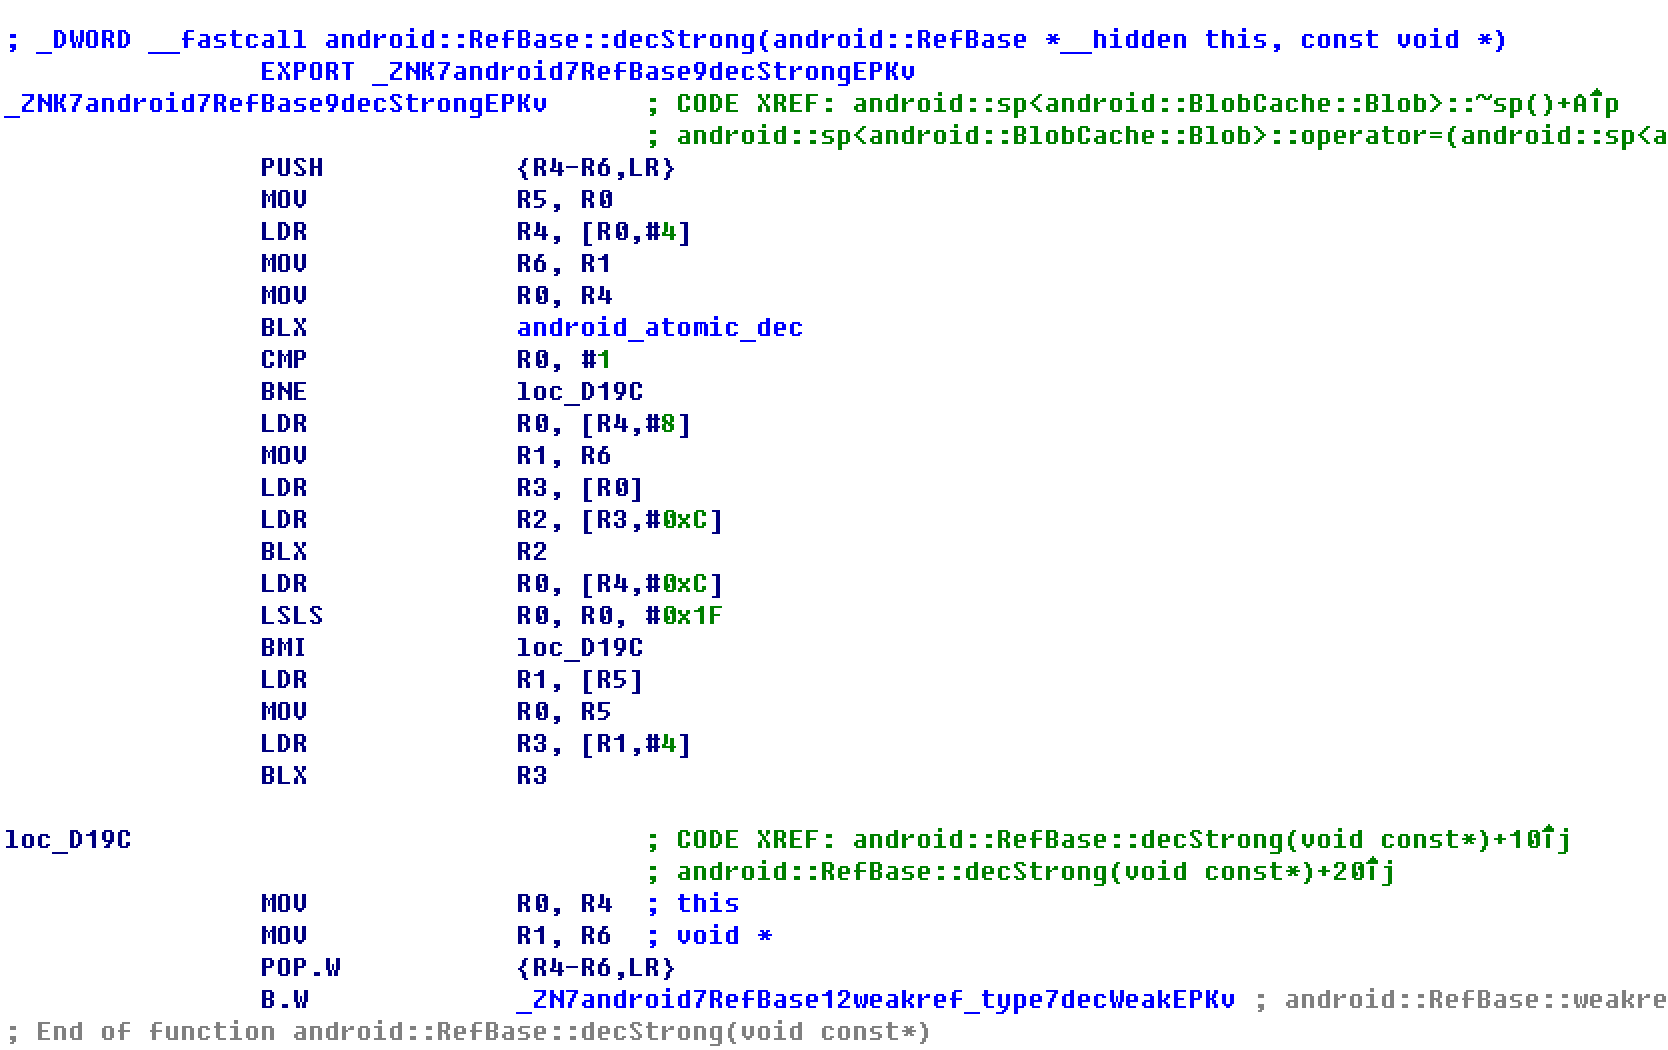 https://raw.githubusercontent.com/CytQ/BlogImgs/master/Root/cve-2014-7911_assembly.png